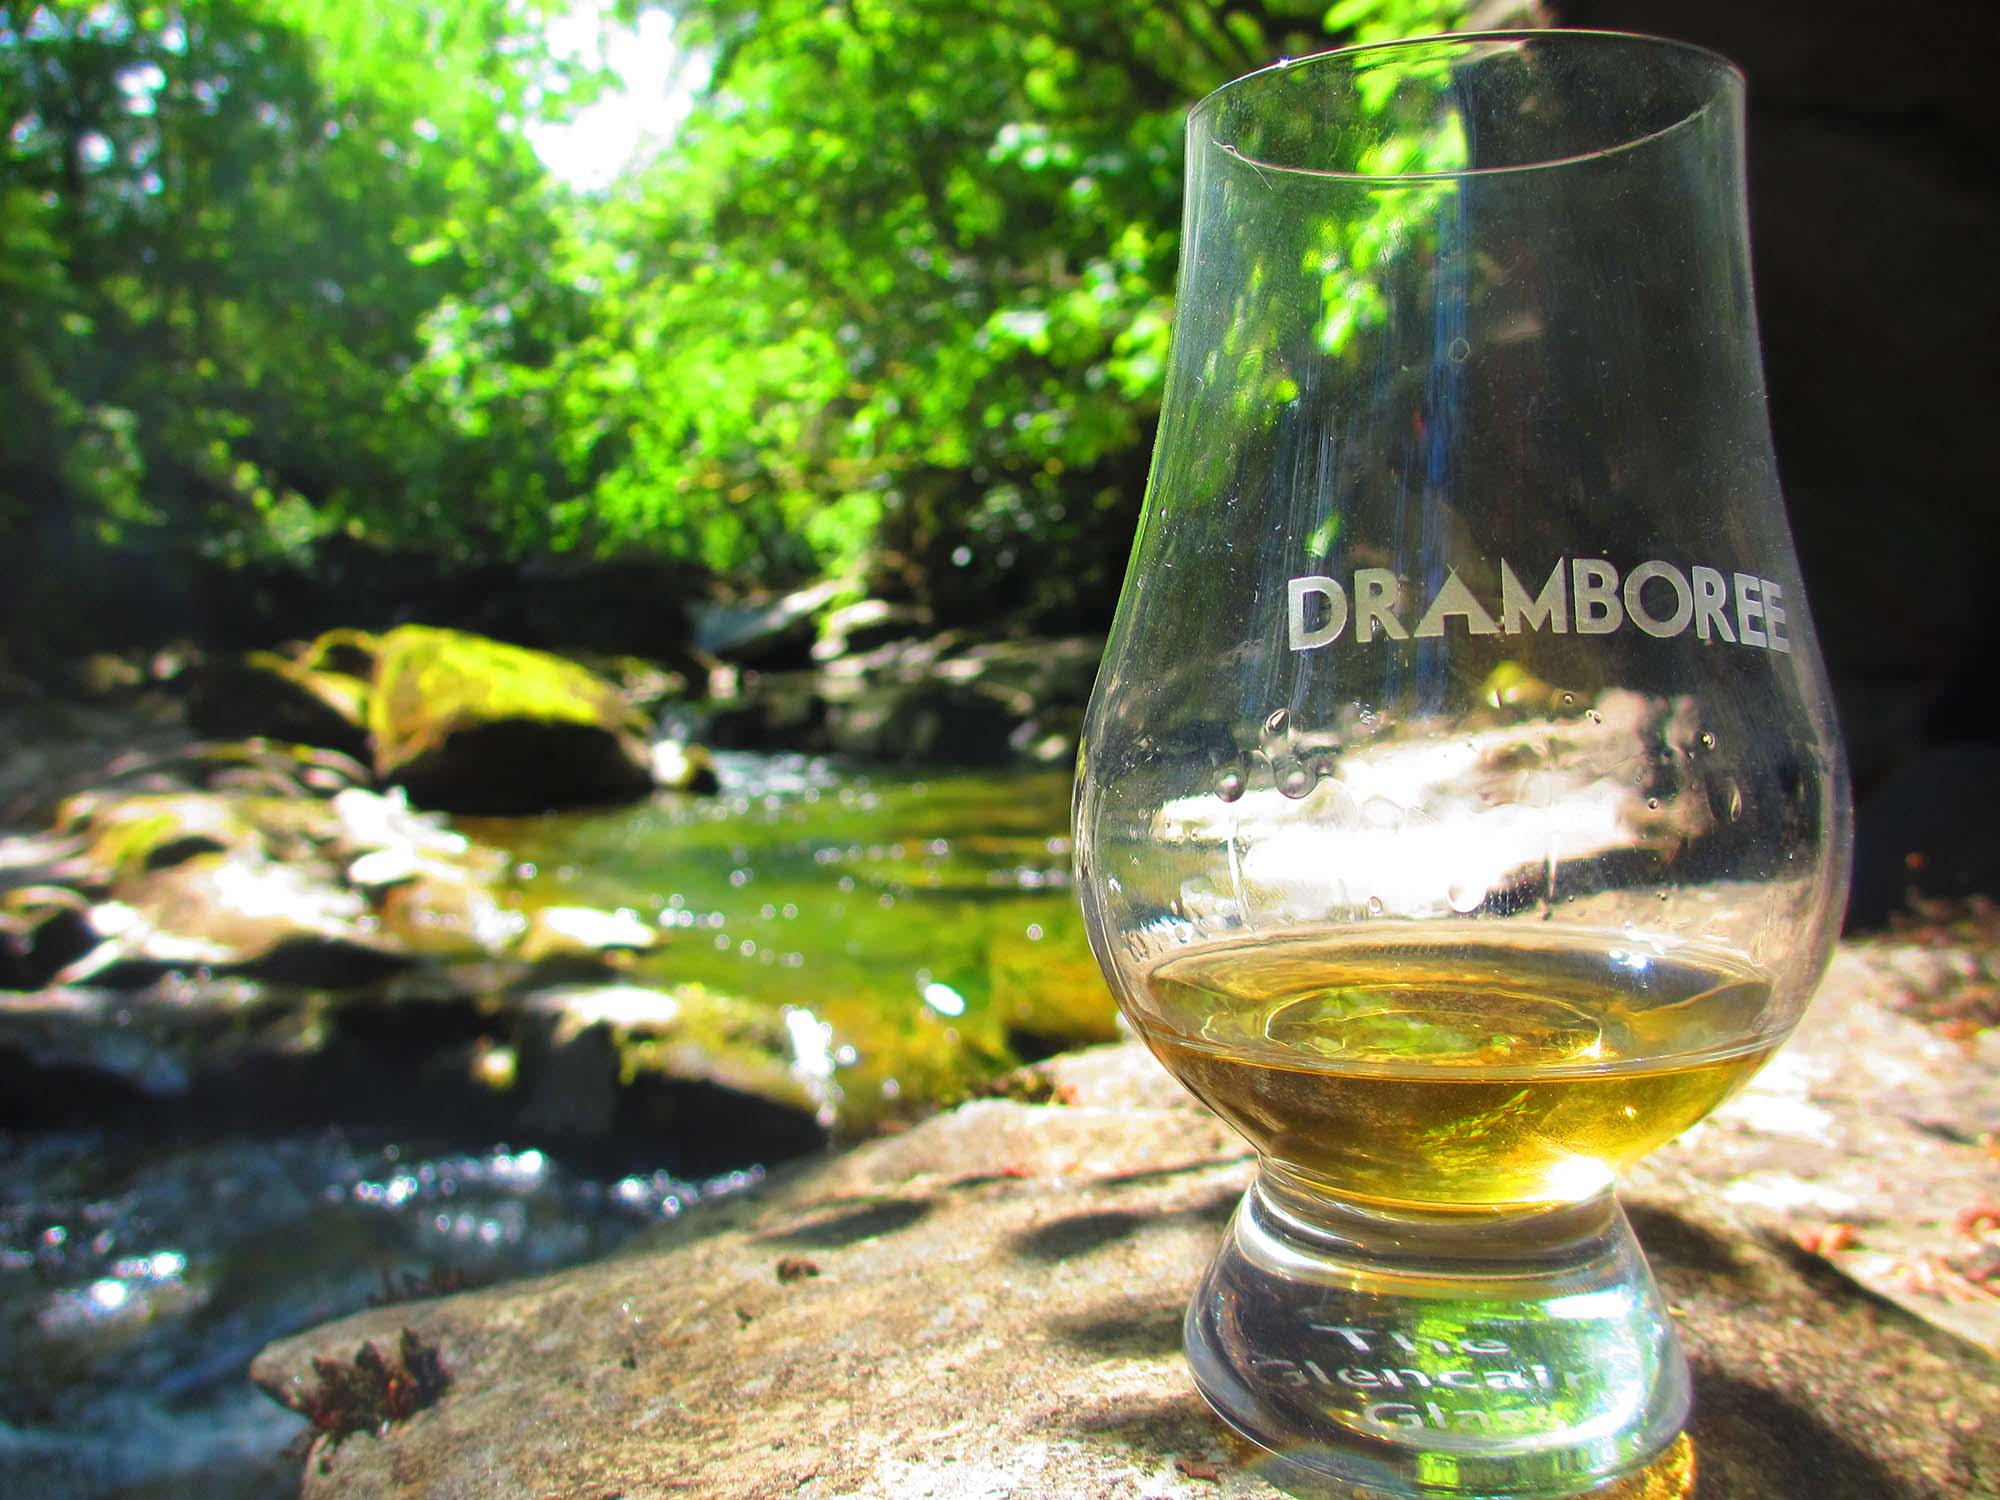 A weekend of whisky in Scotland? What could be better than that?!